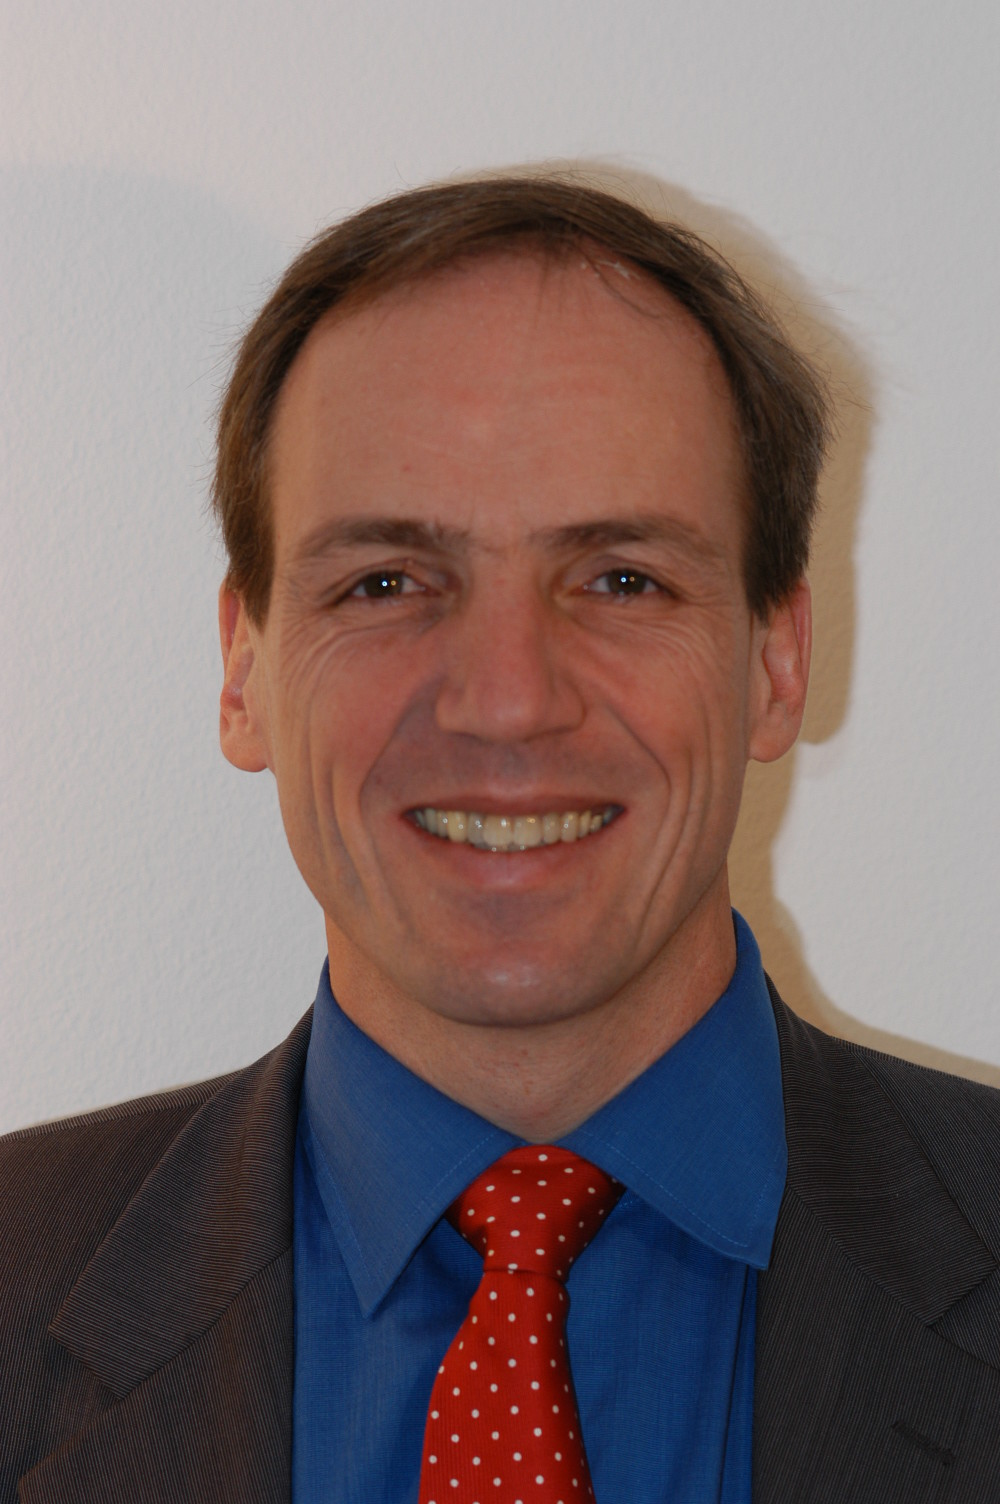 Dr. Andreas Suter